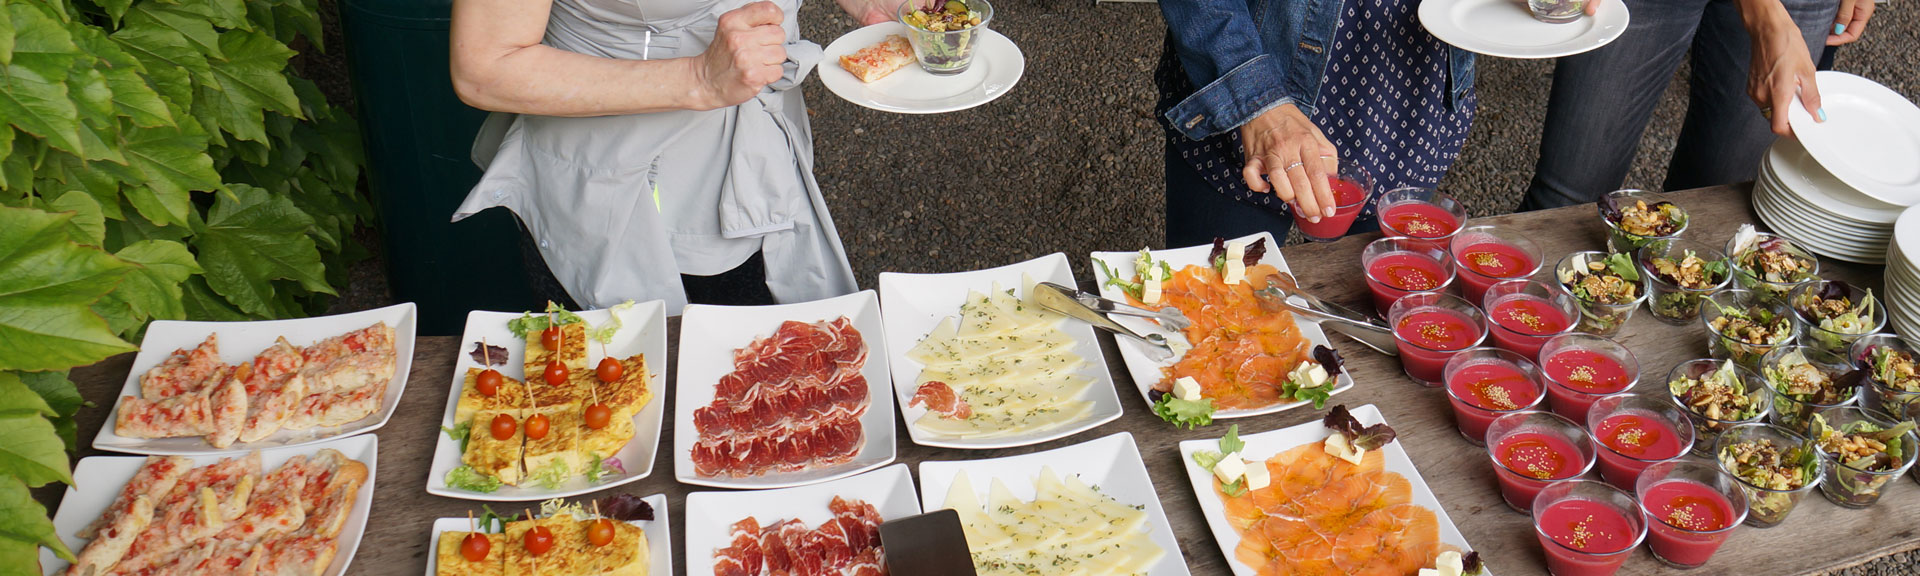 Exquisite lunches - Bikecat Cycling Tours